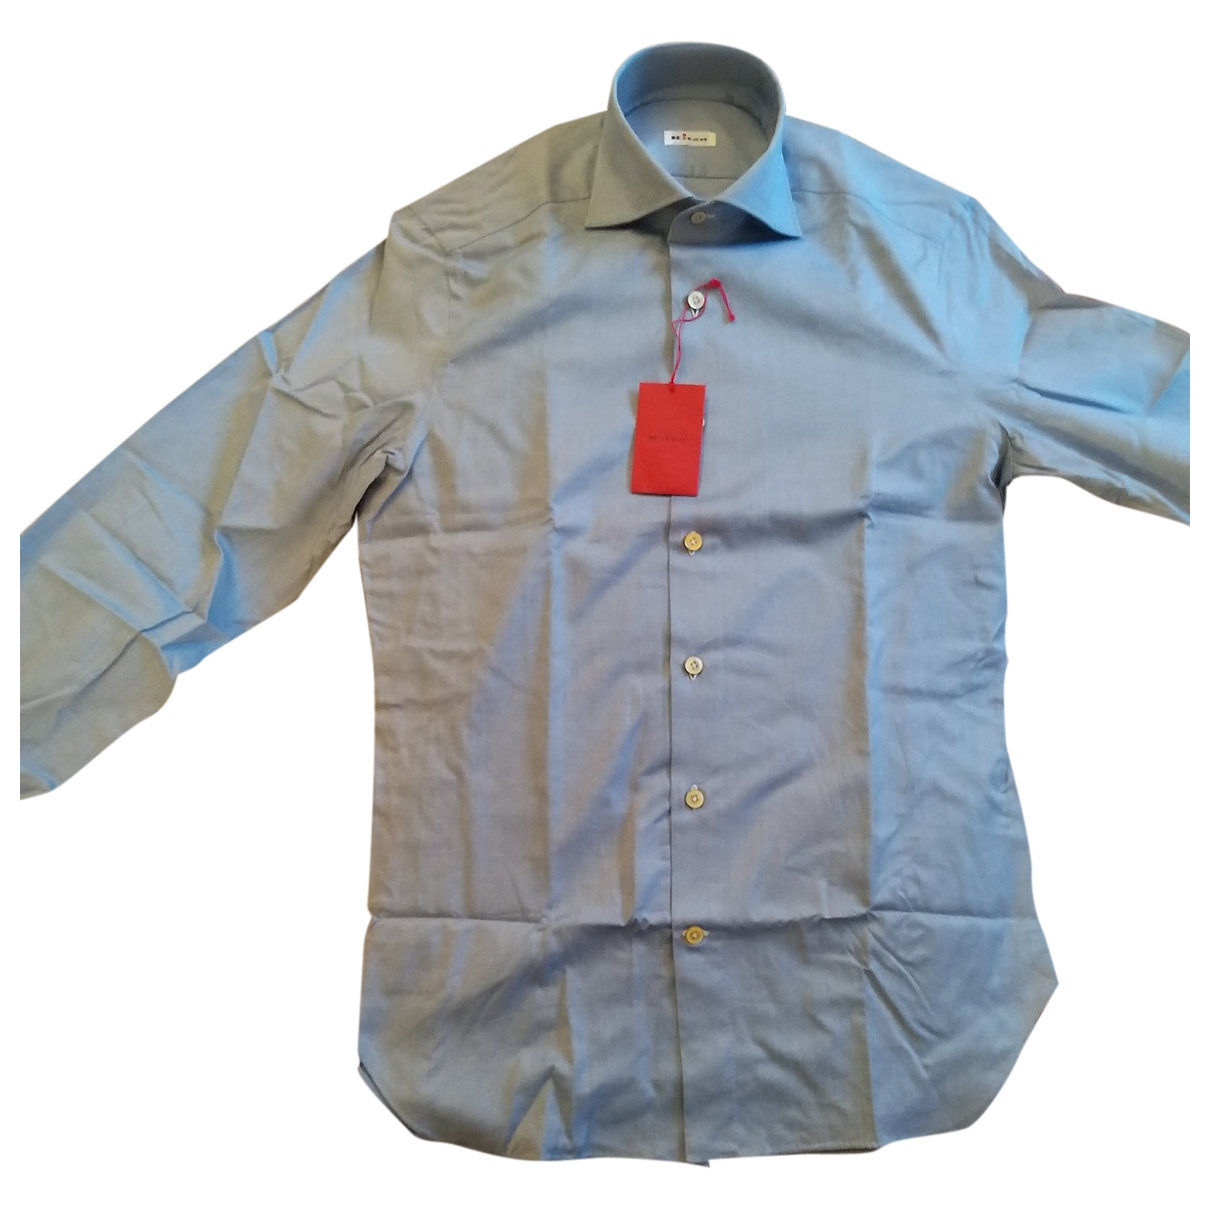 Kiton \N Cotton Shirts for Men 15.5 UK - US (tour de cou / collar)